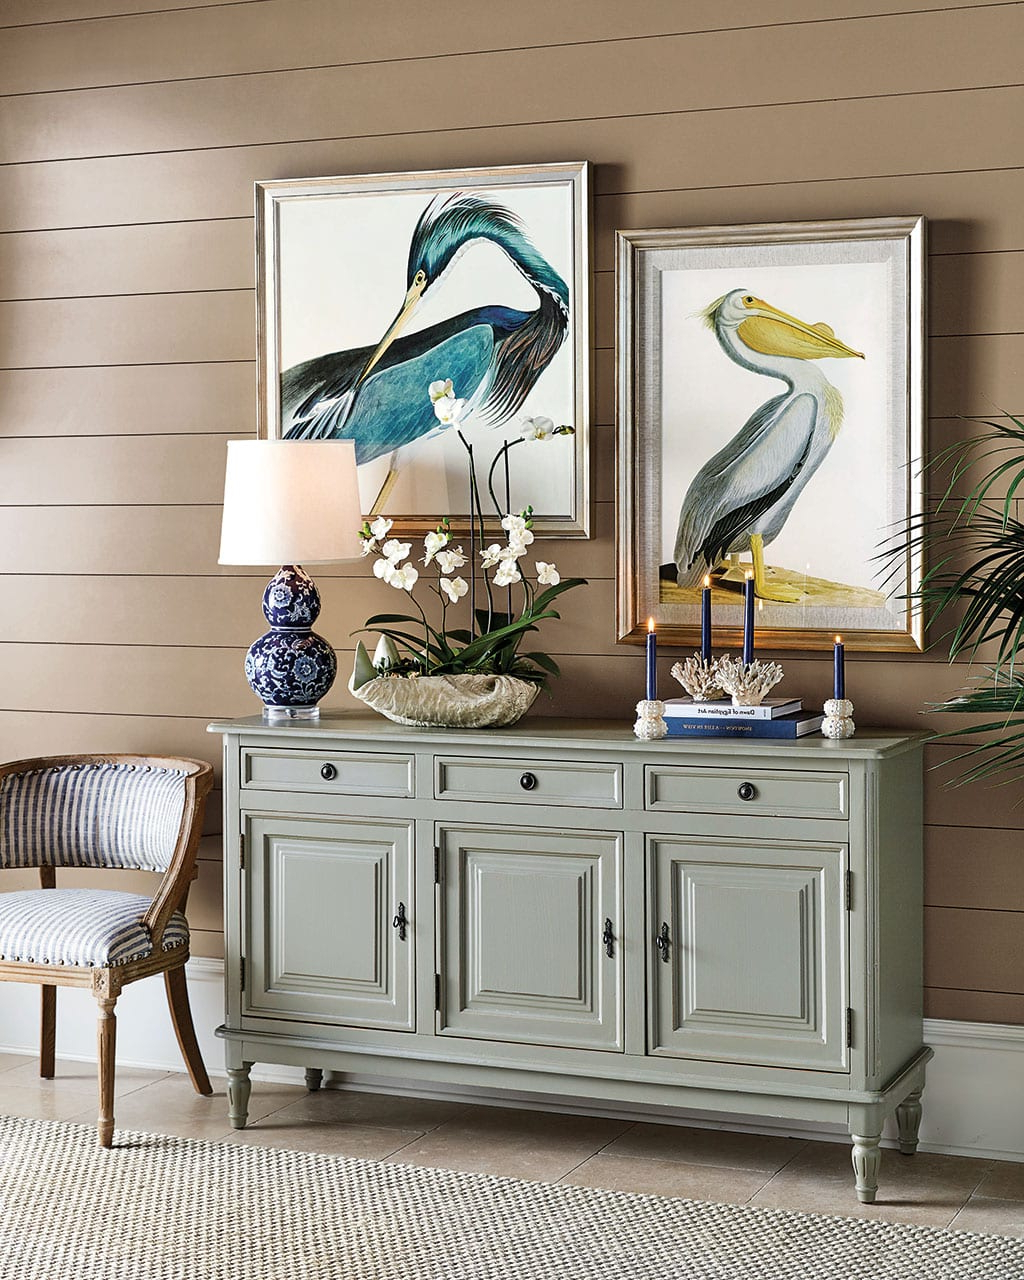 How To Decorate With Regard To Most Recently Released 4 Piece Wall Decor Sets (View 19 of 20)